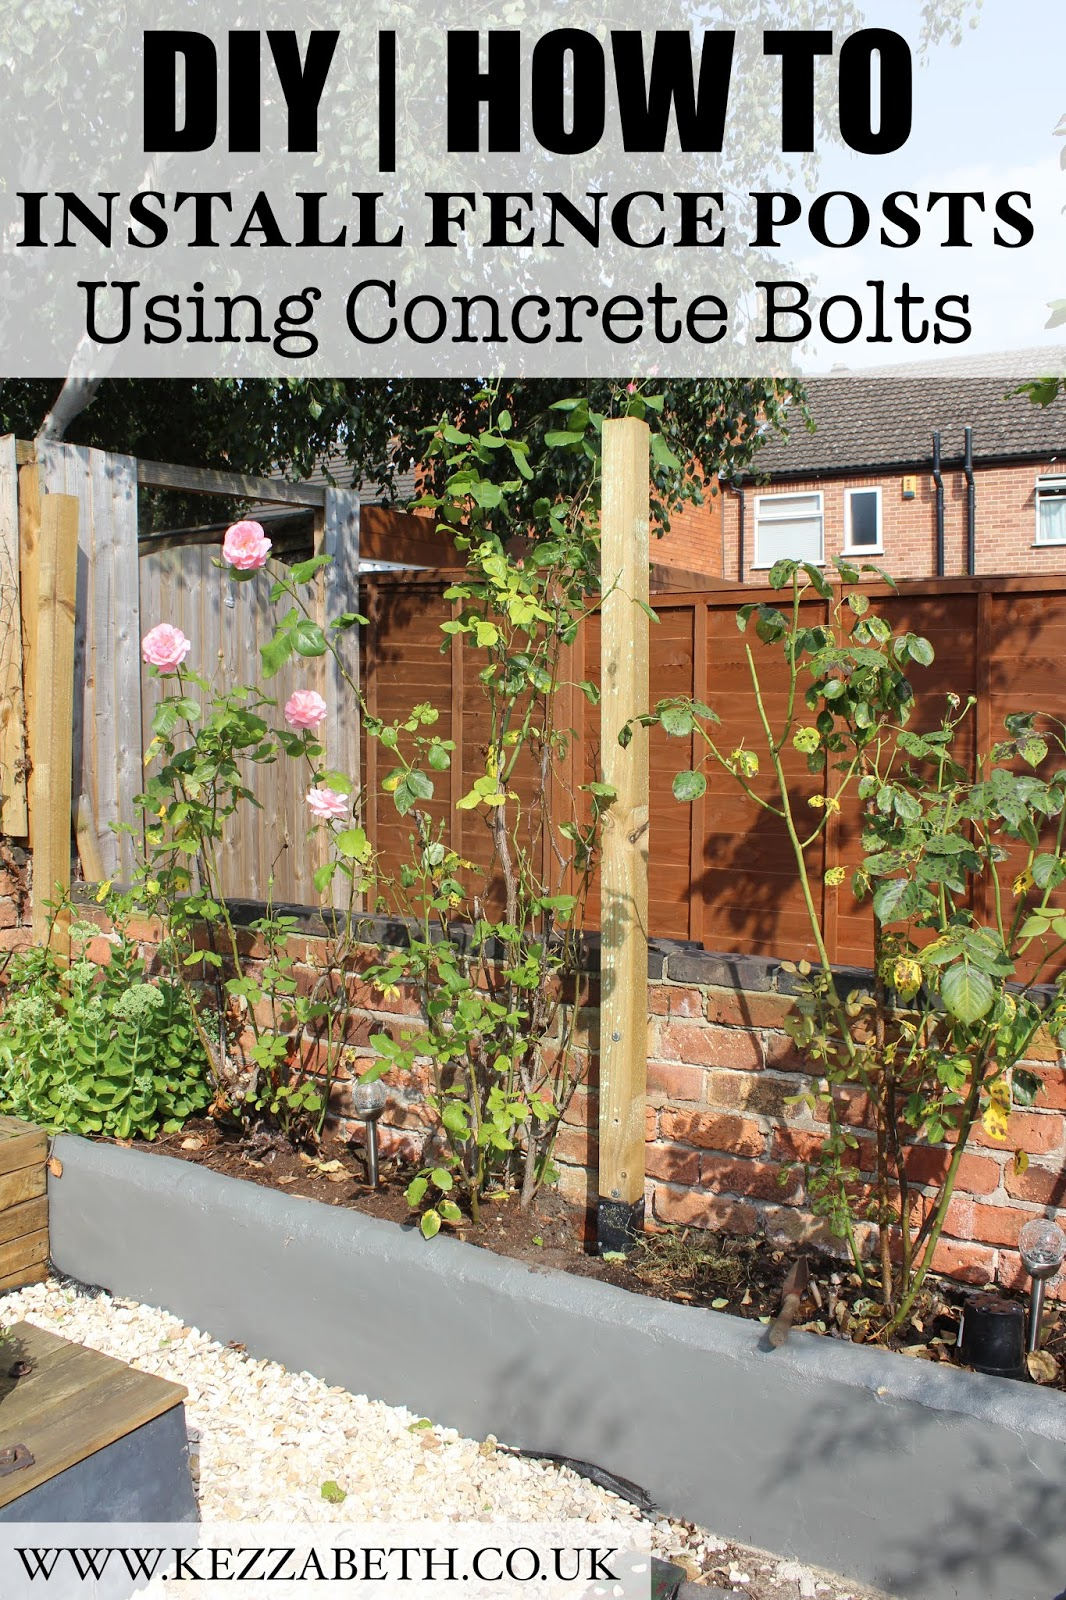 DIY Installing Fence Posts with Concrete Bolts